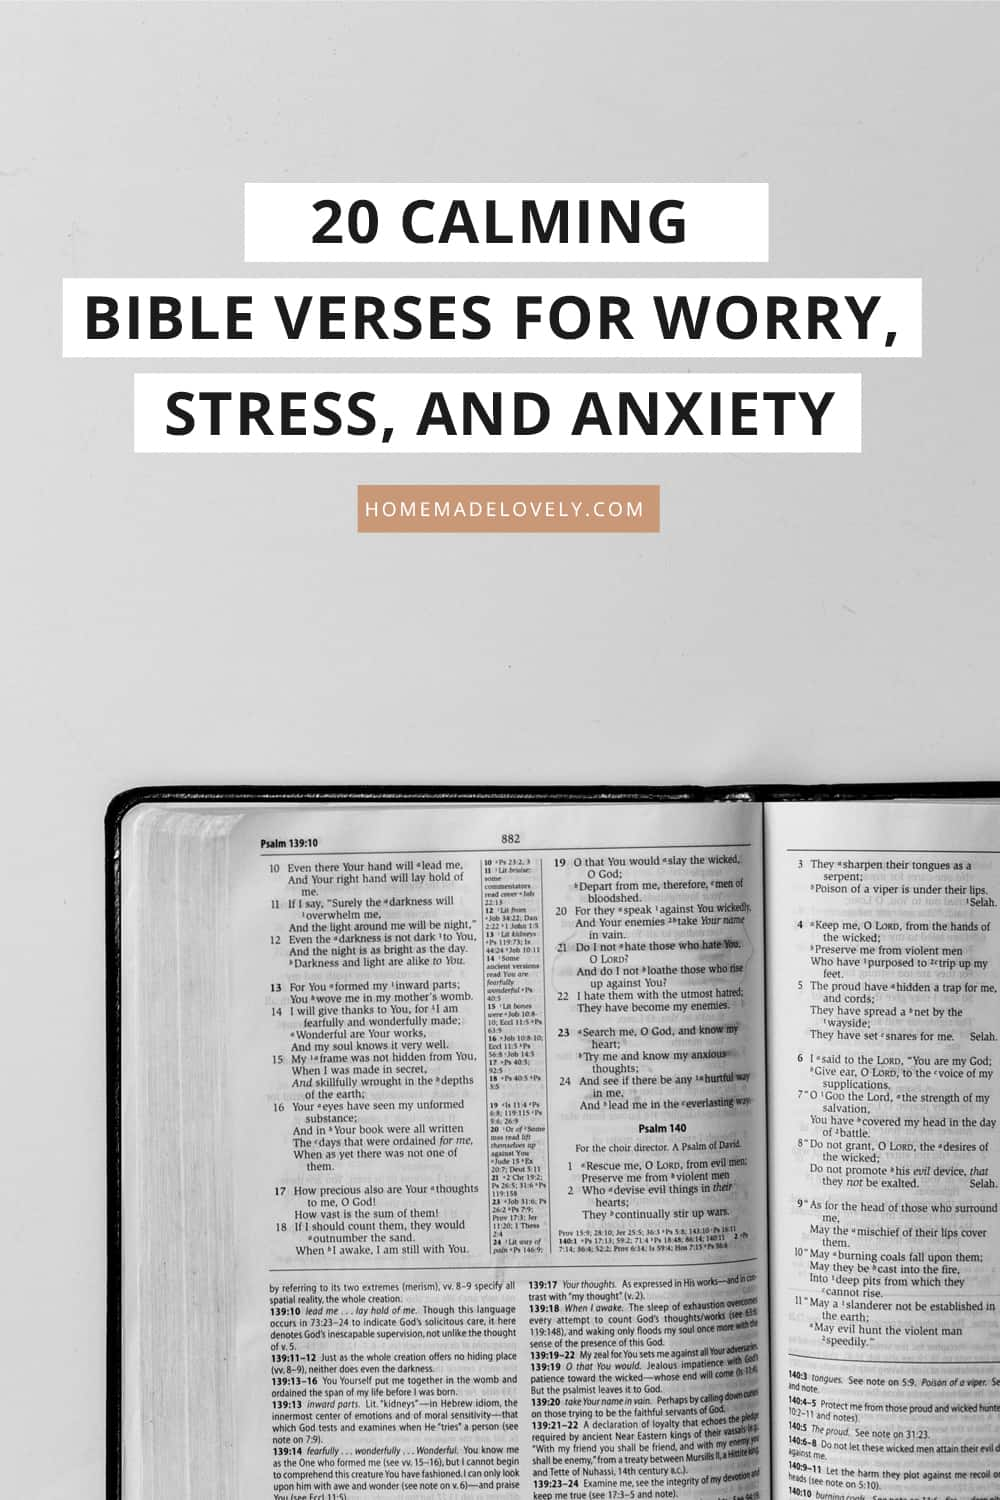 open bible with text overlay that says 20 calming bible verses for worry, stress and anxiety